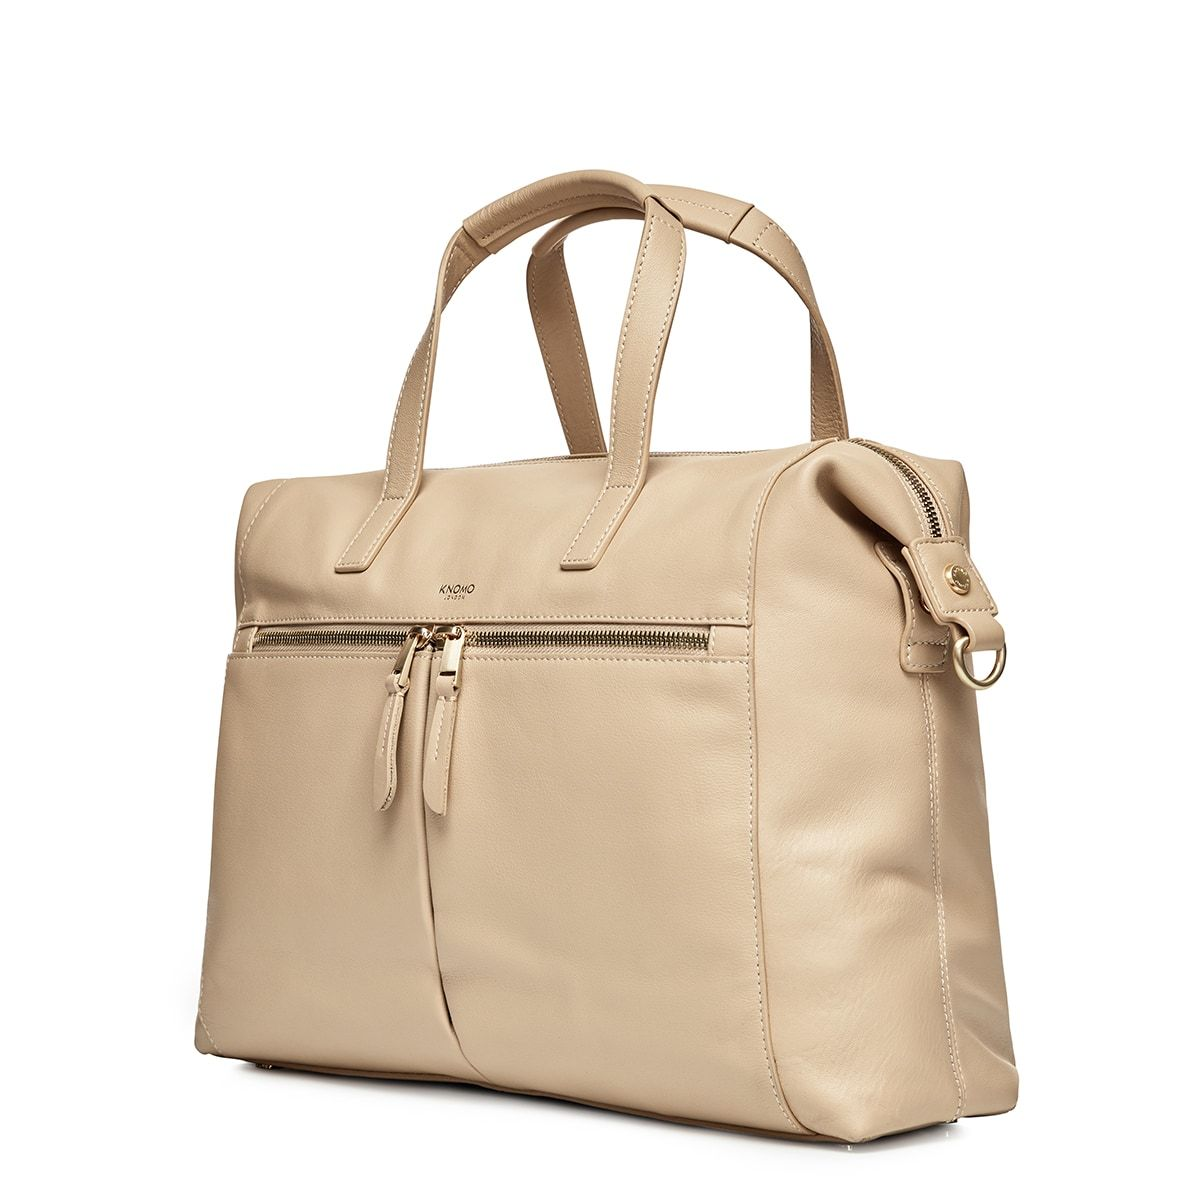 "KNOMO Audley Laptop Handbag Three Quarter View With Strap 14"" -  Trench Beige 